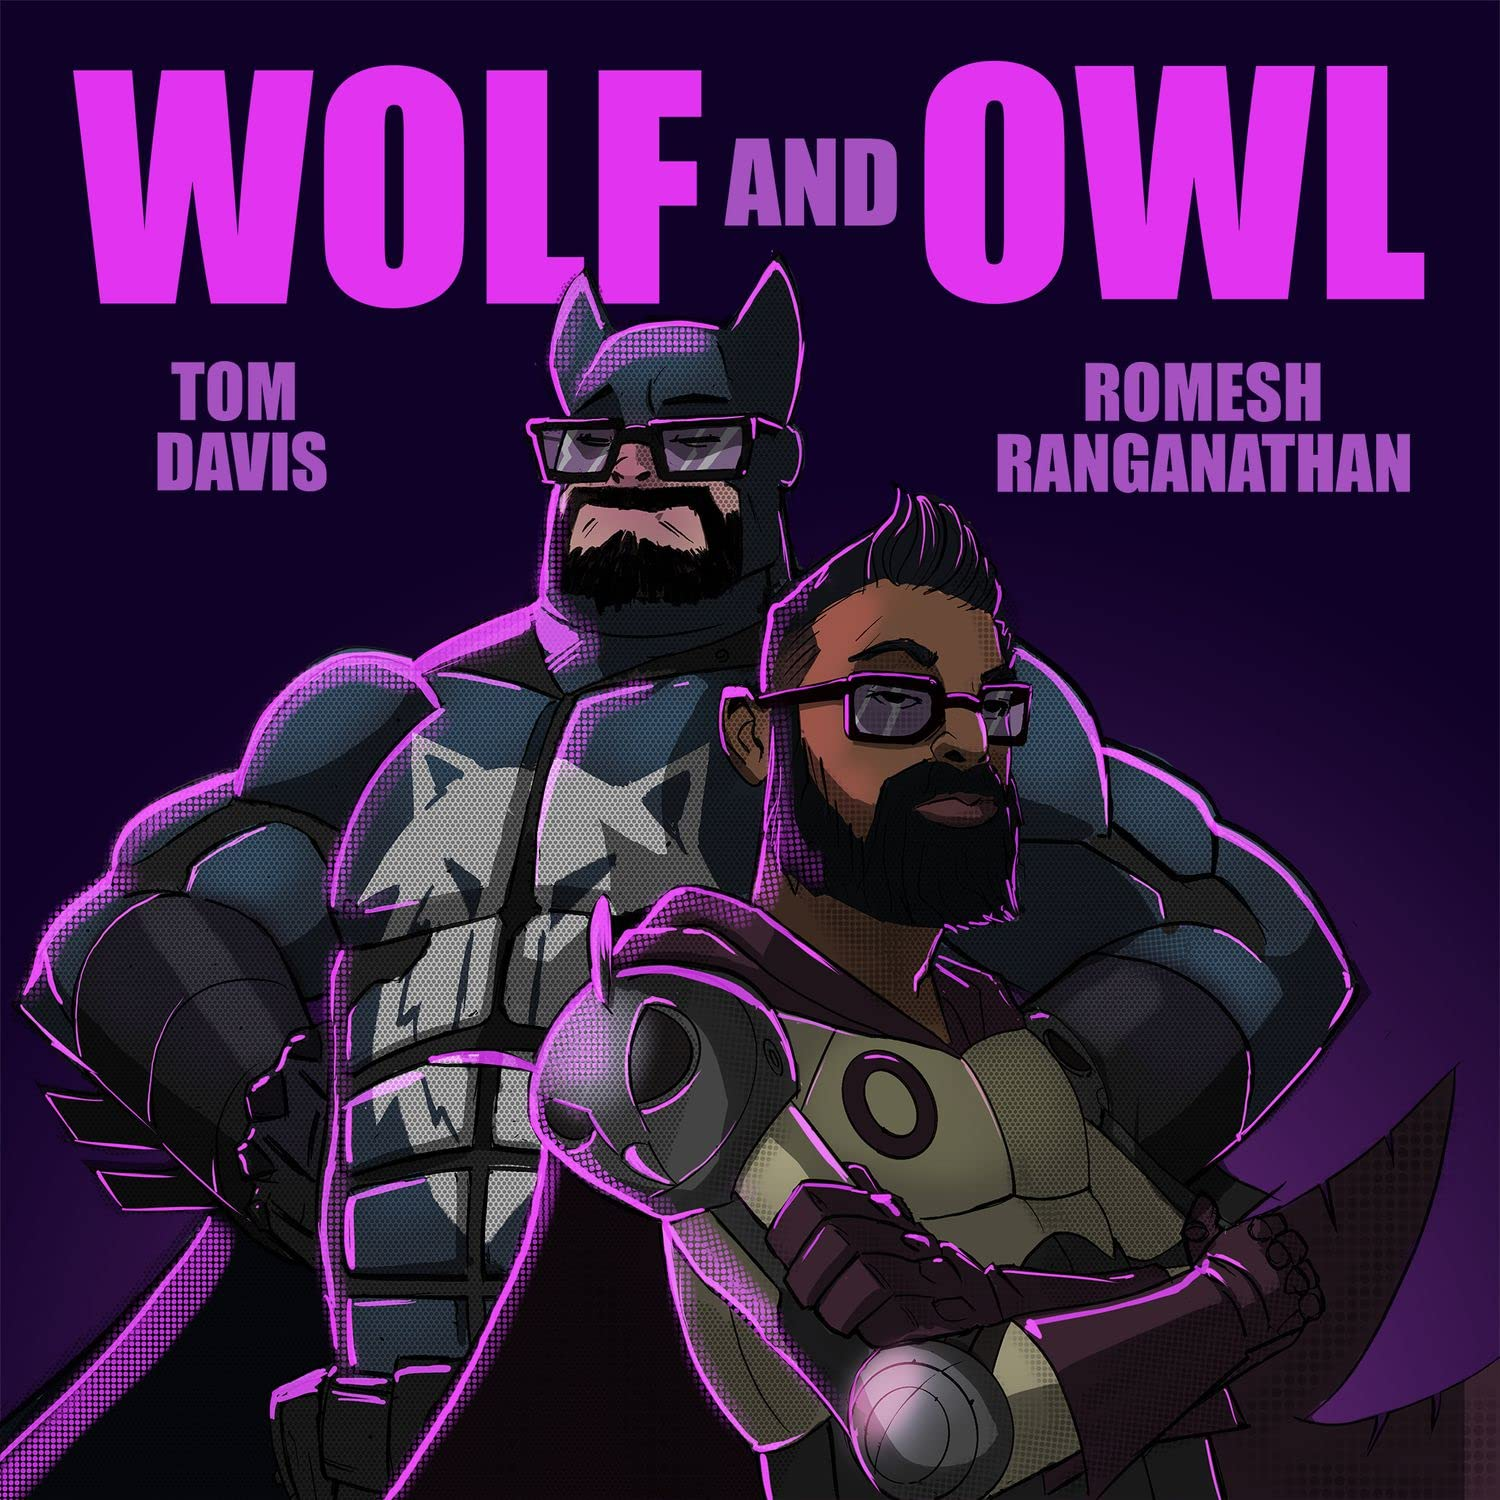 Wolf and Owl